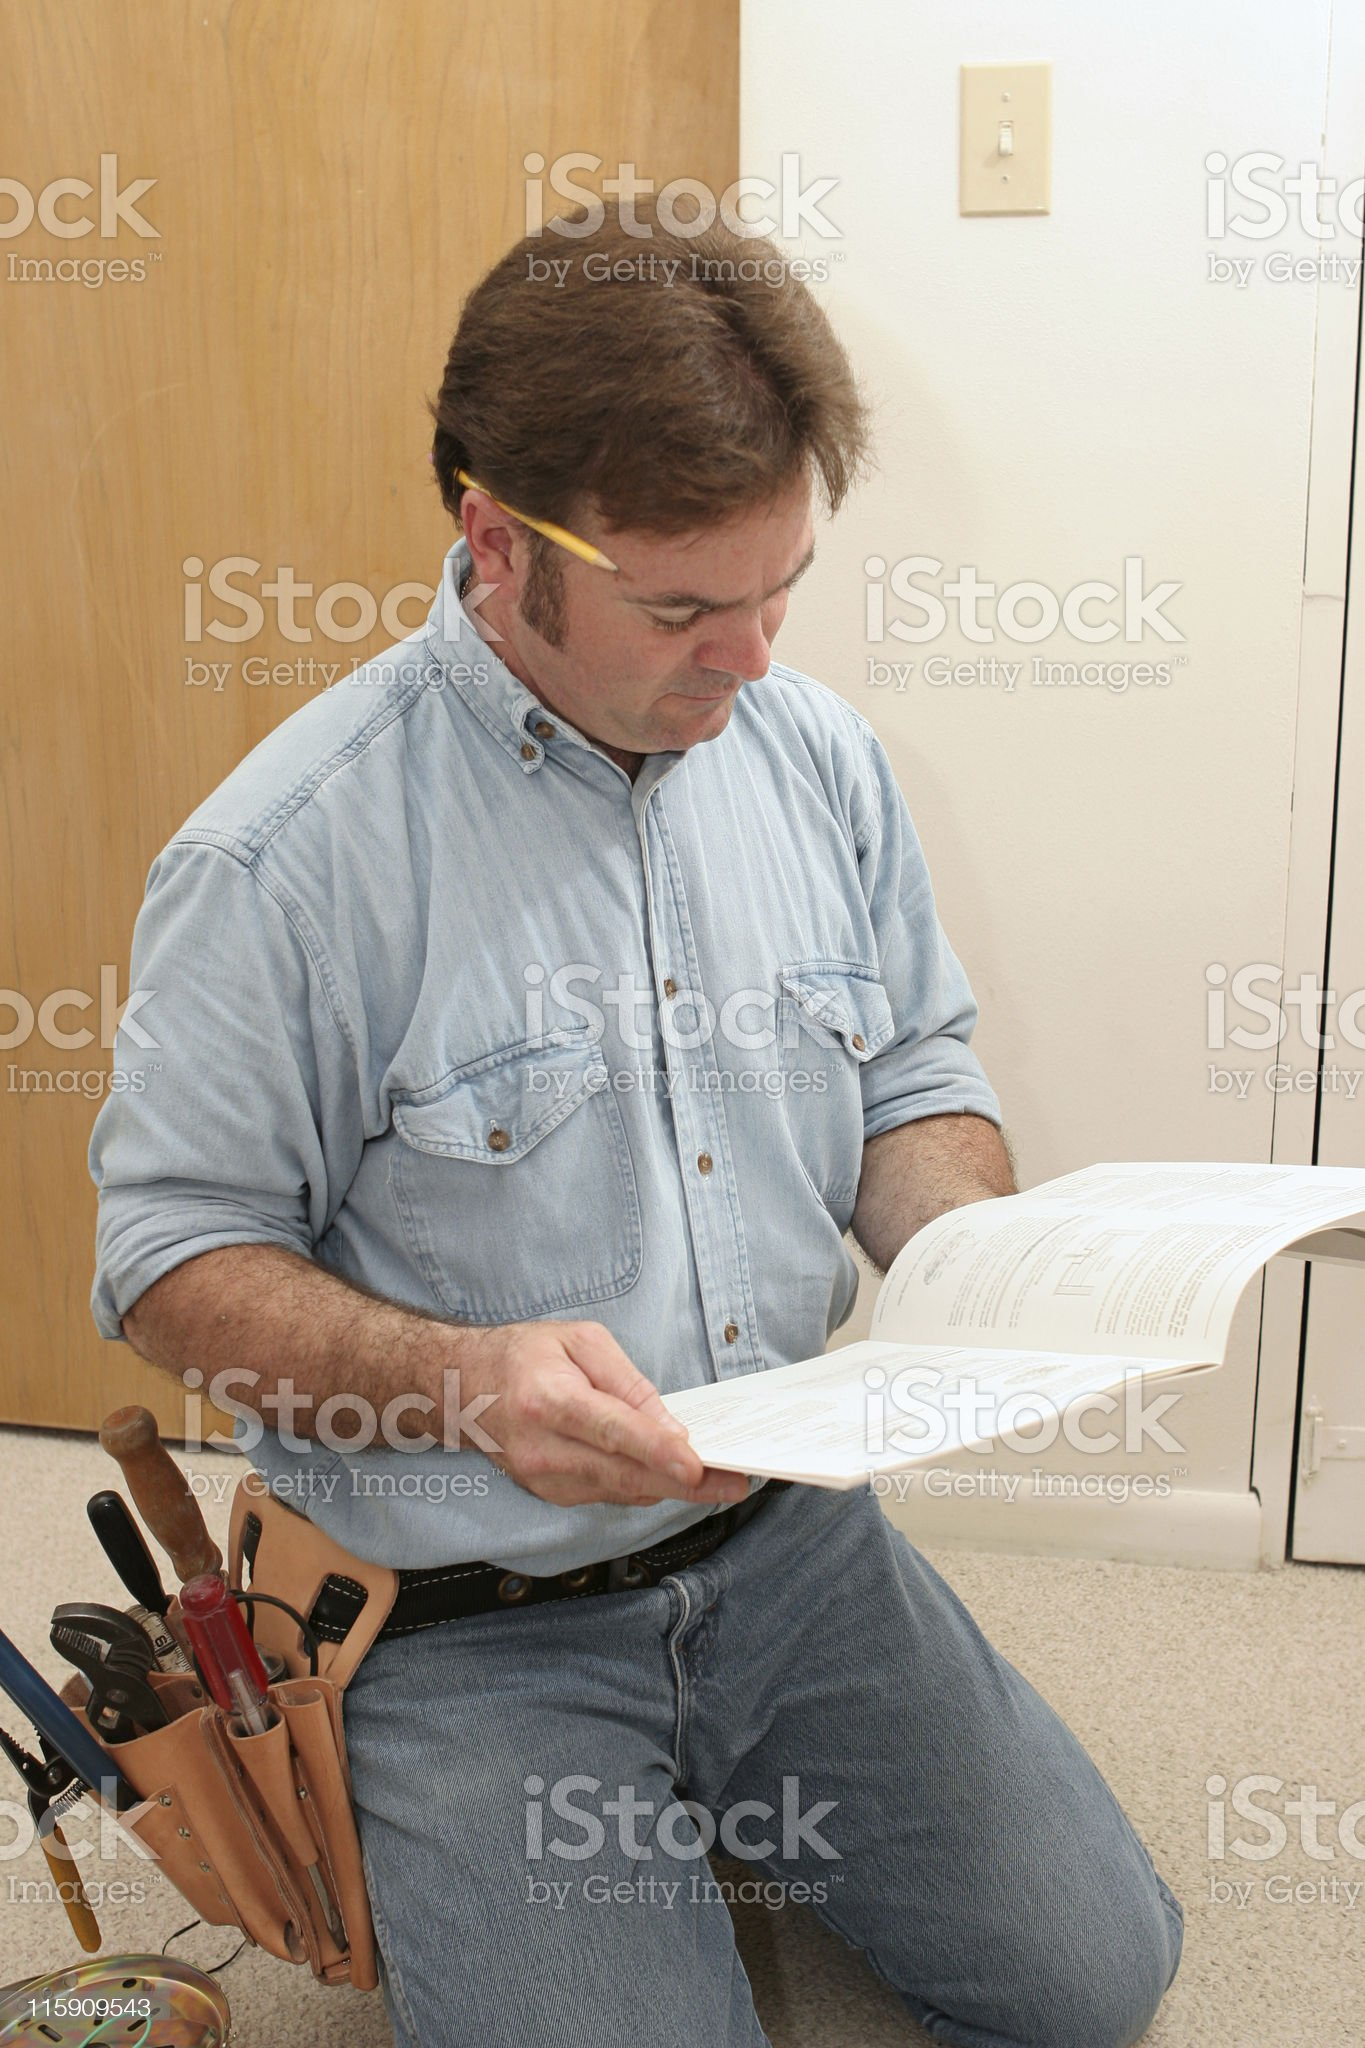 Electrician Reads the Manual royalty-free stock photo